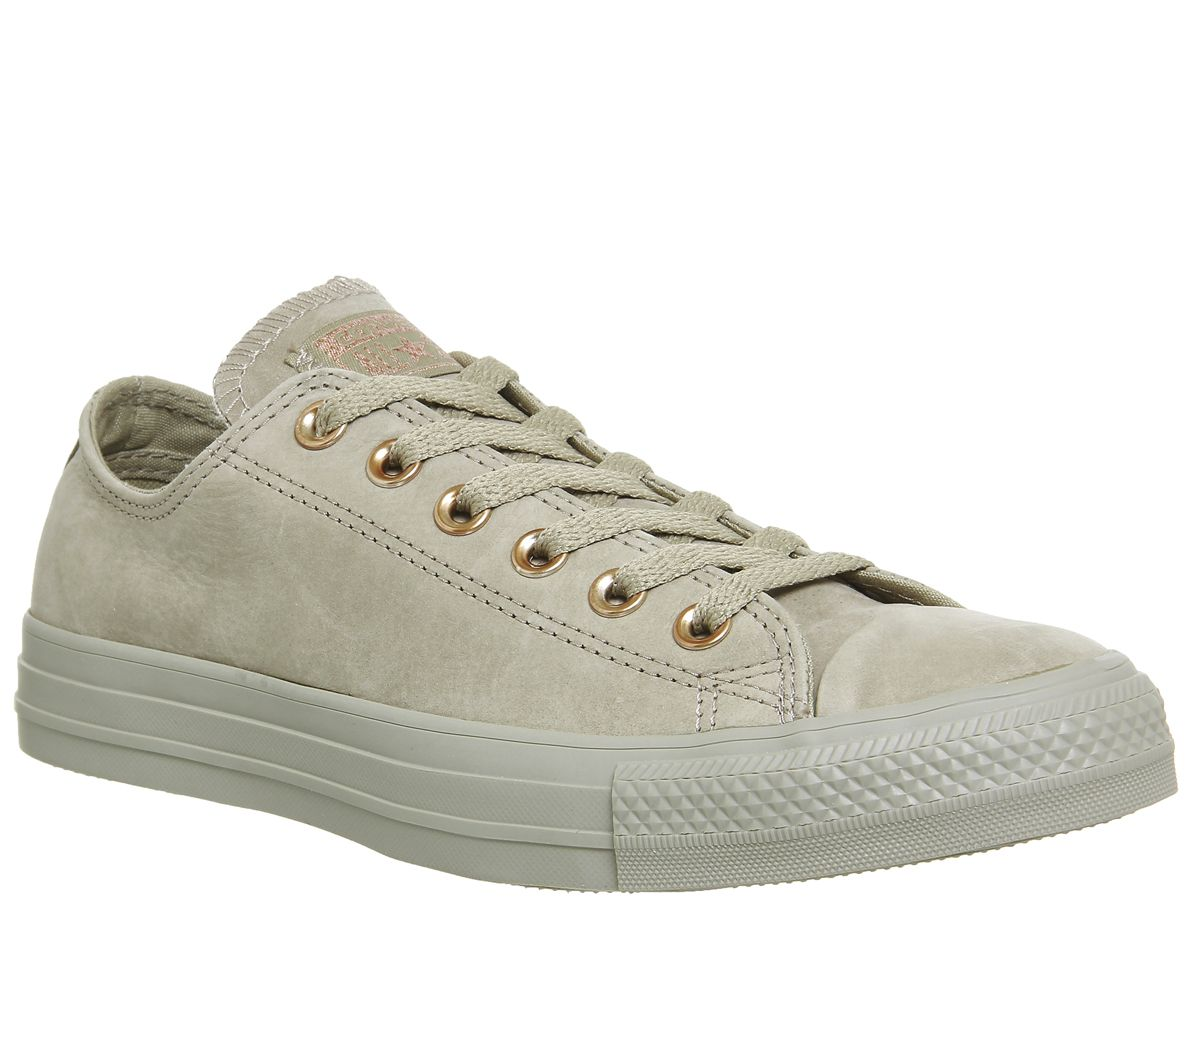 f1dedccfa860 Converse All Star Low Leather Khaki Rose Gold Exclusive - Hers trainers